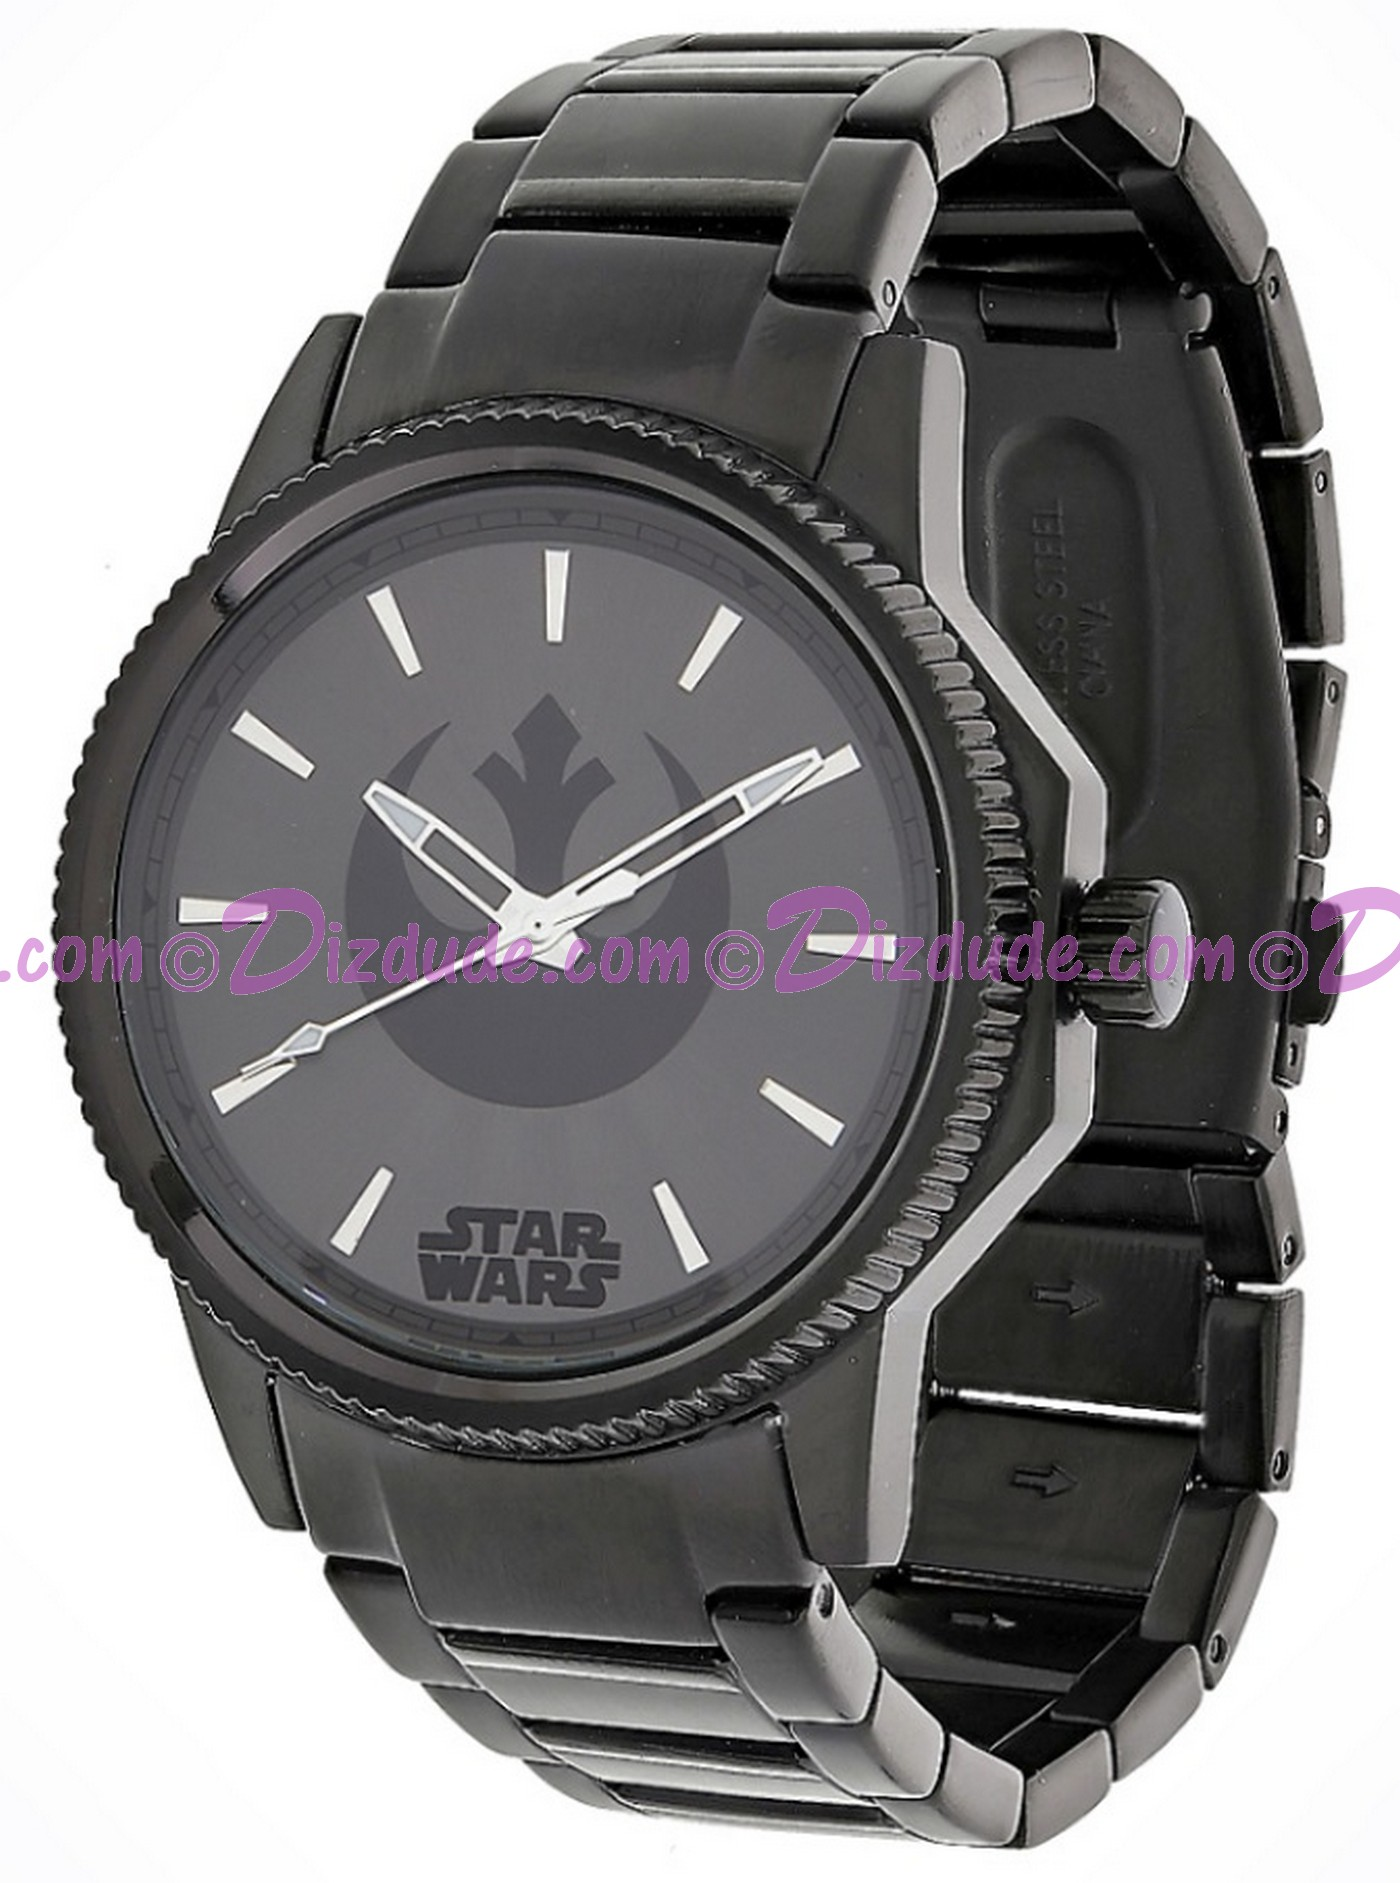 (SOLD OUT) Star Wars Alliance Starbird Stainless Steel Wrist Watch